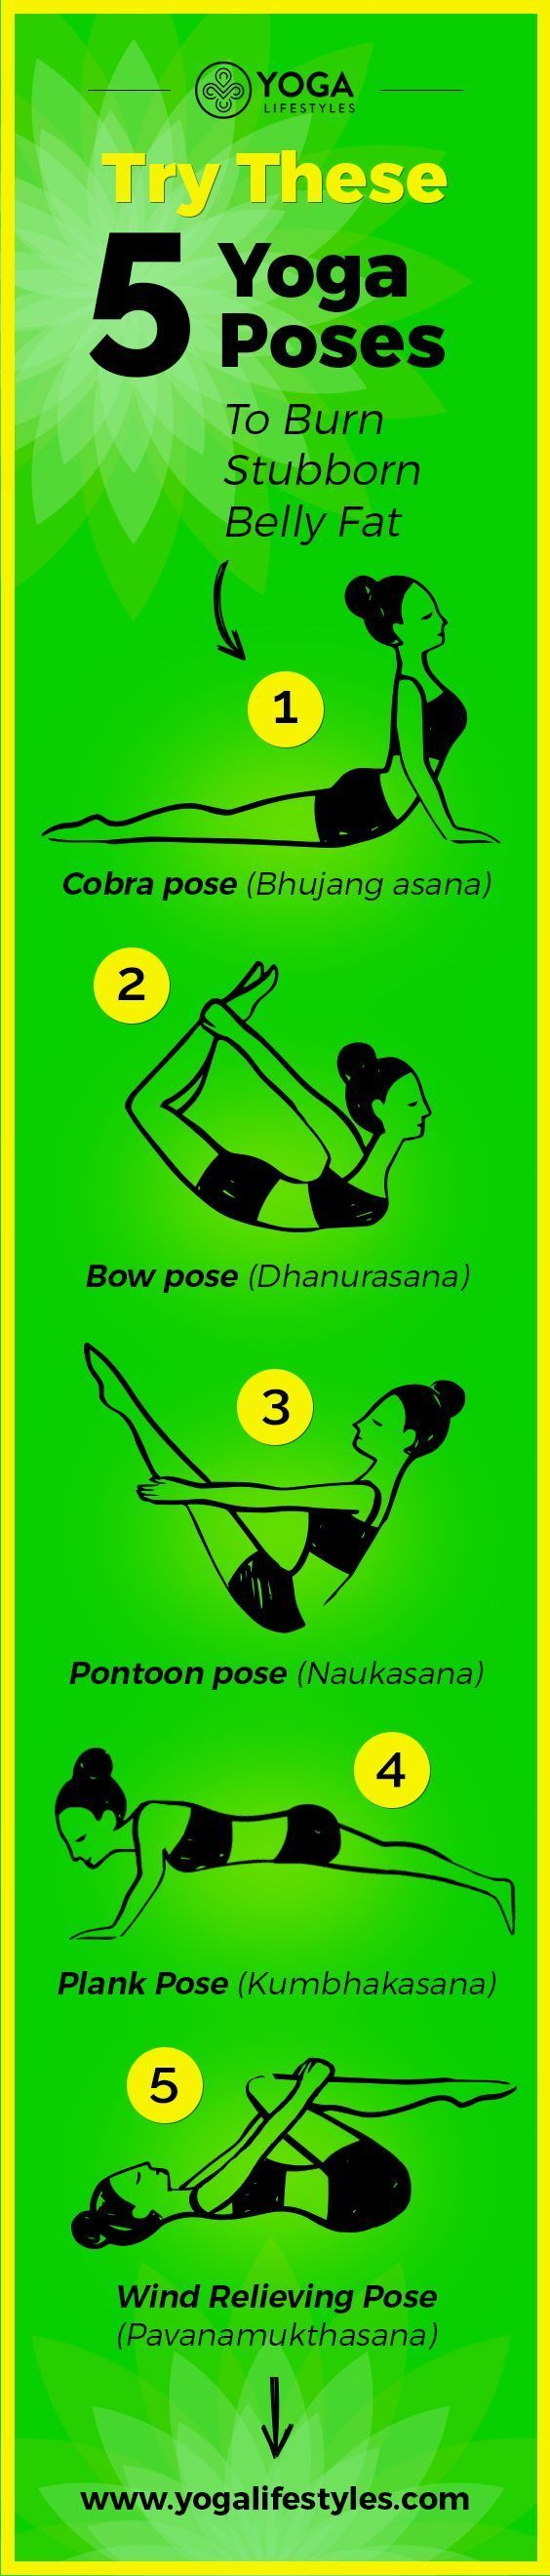 Try These 5 Yoga Poses To Burn Stubborn Belly Fat